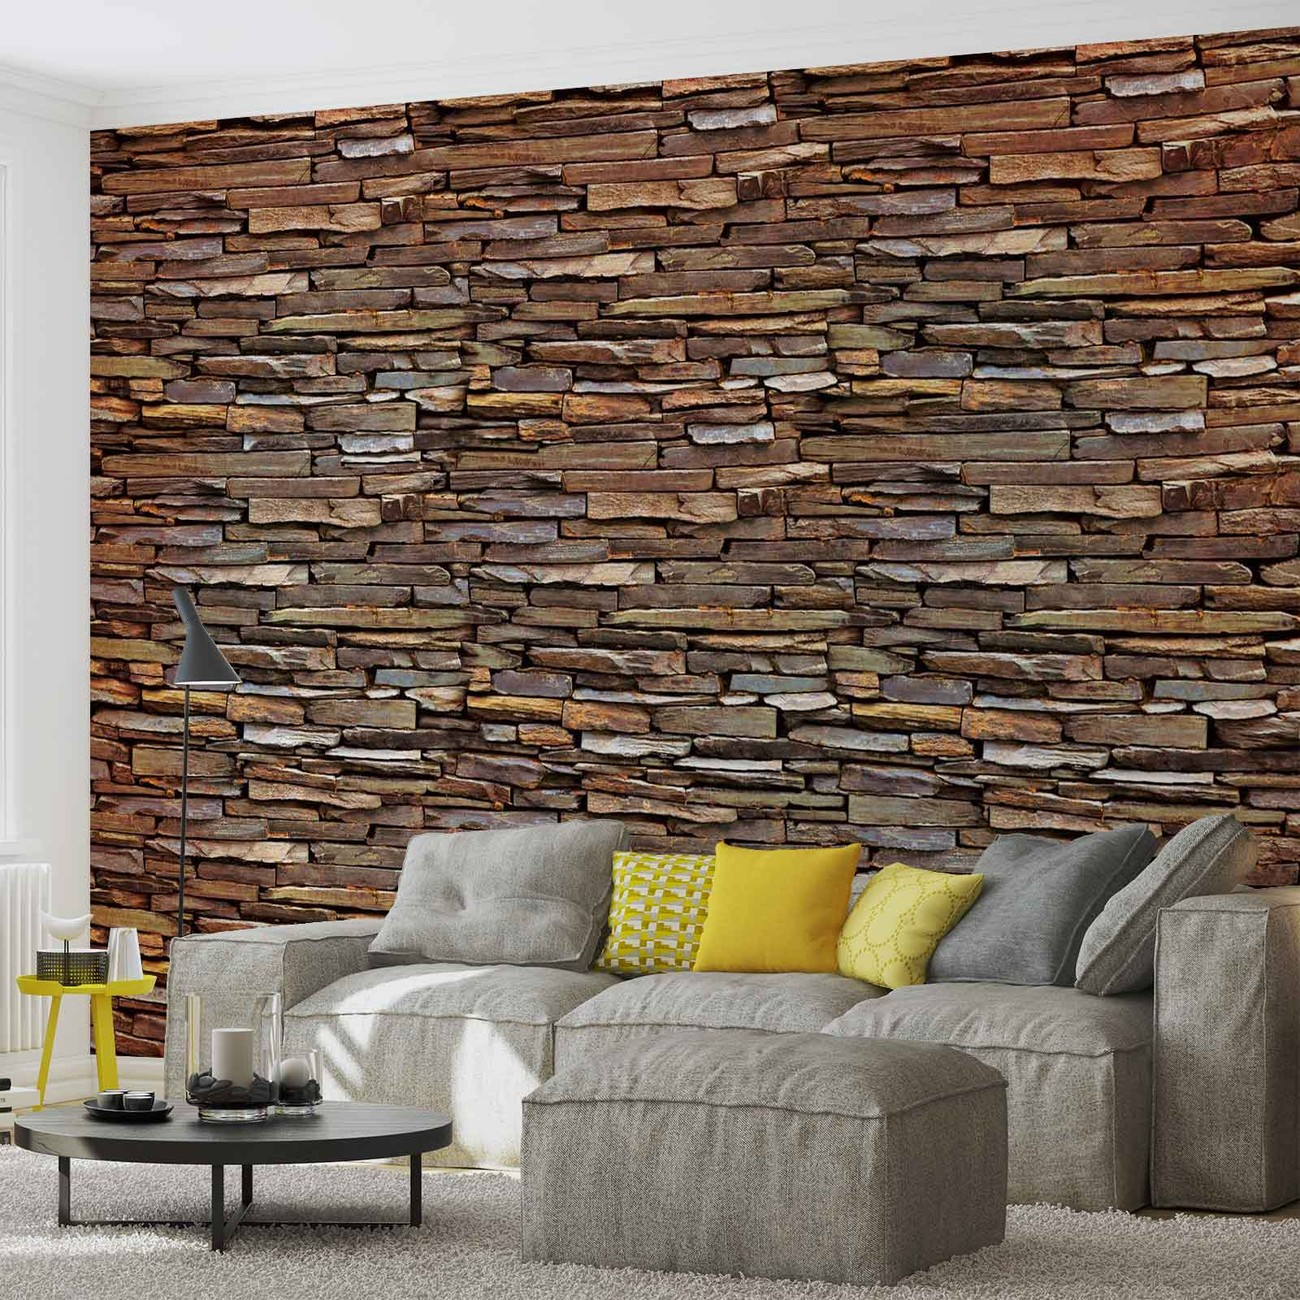 stone wall fototapeta tapeta. Black Bedroom Furniture Sets. Home Design Ideas